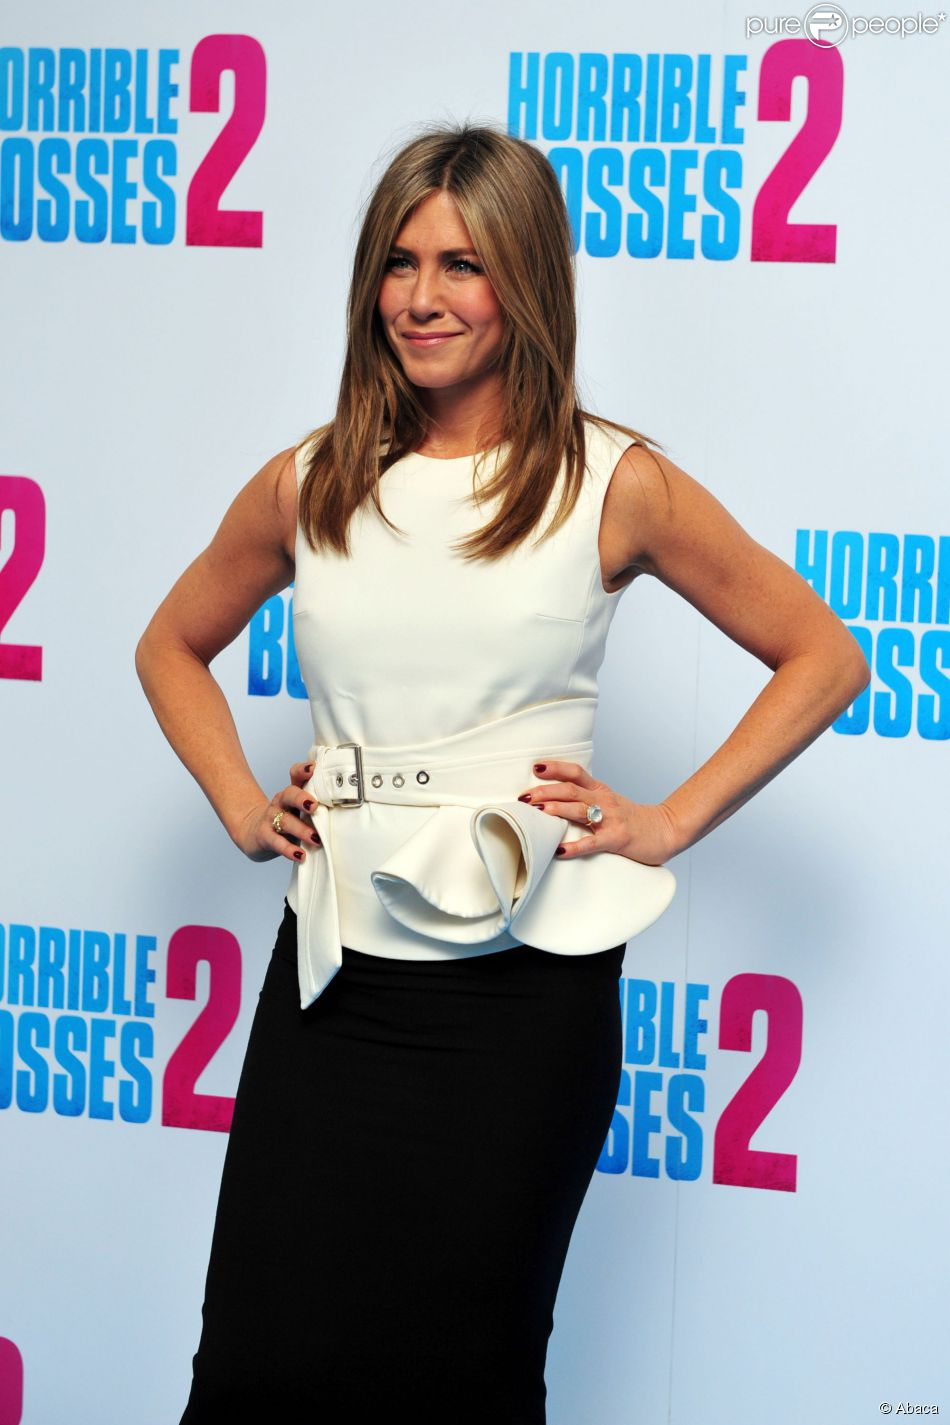 Jennifer Aniston au photocall du film Comment tuer son boss 2 au Corinthia Hotel à Londres le 13 novembre 2014.